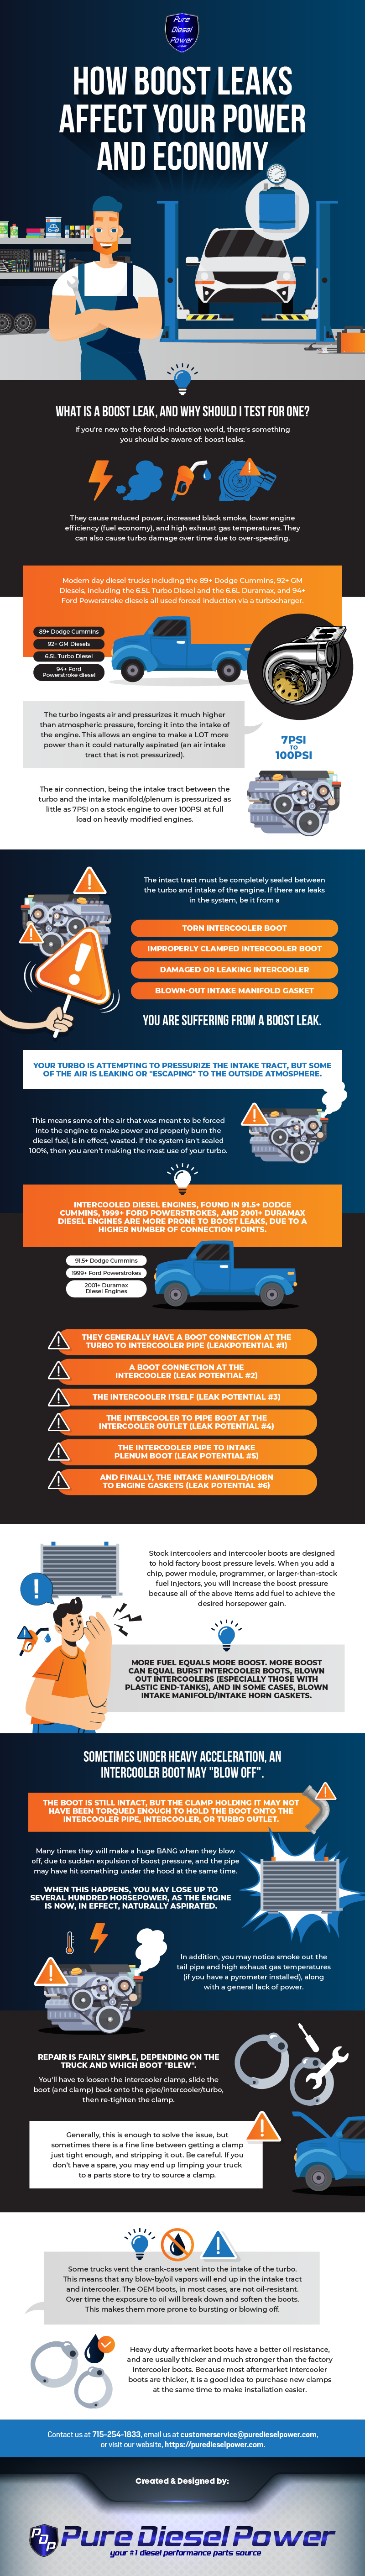 boost-leaks-afffect-power-economy-infographic